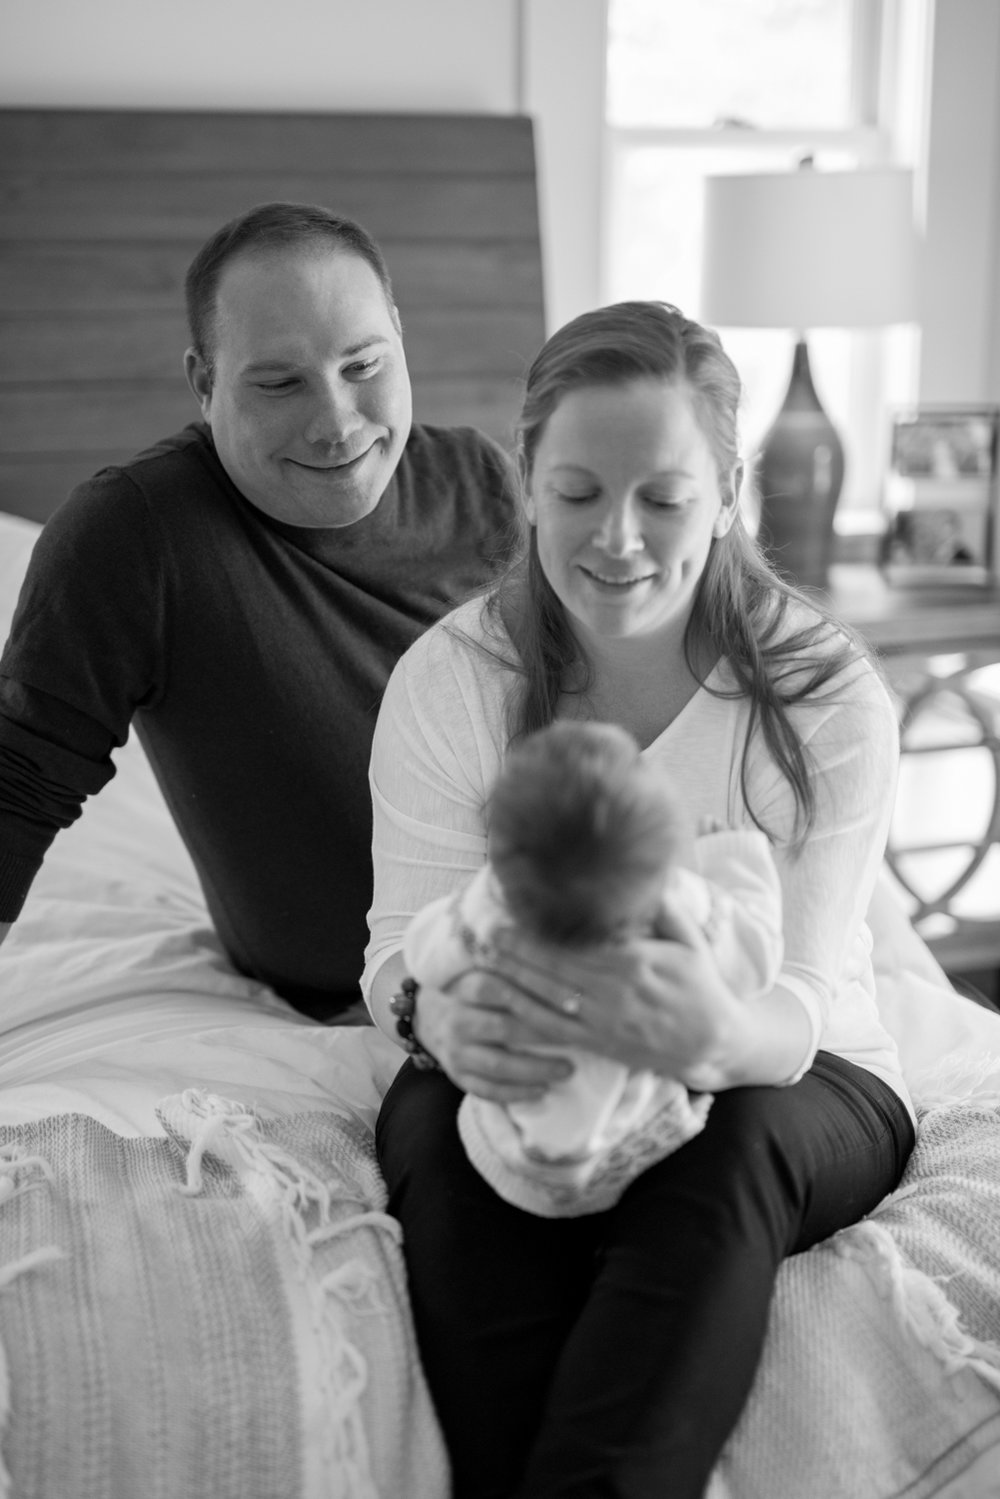 Alongi Family 2017- At Home Lifestyle Newborn Photos- New Jersey- Olivia Christina Photo-39.JPG